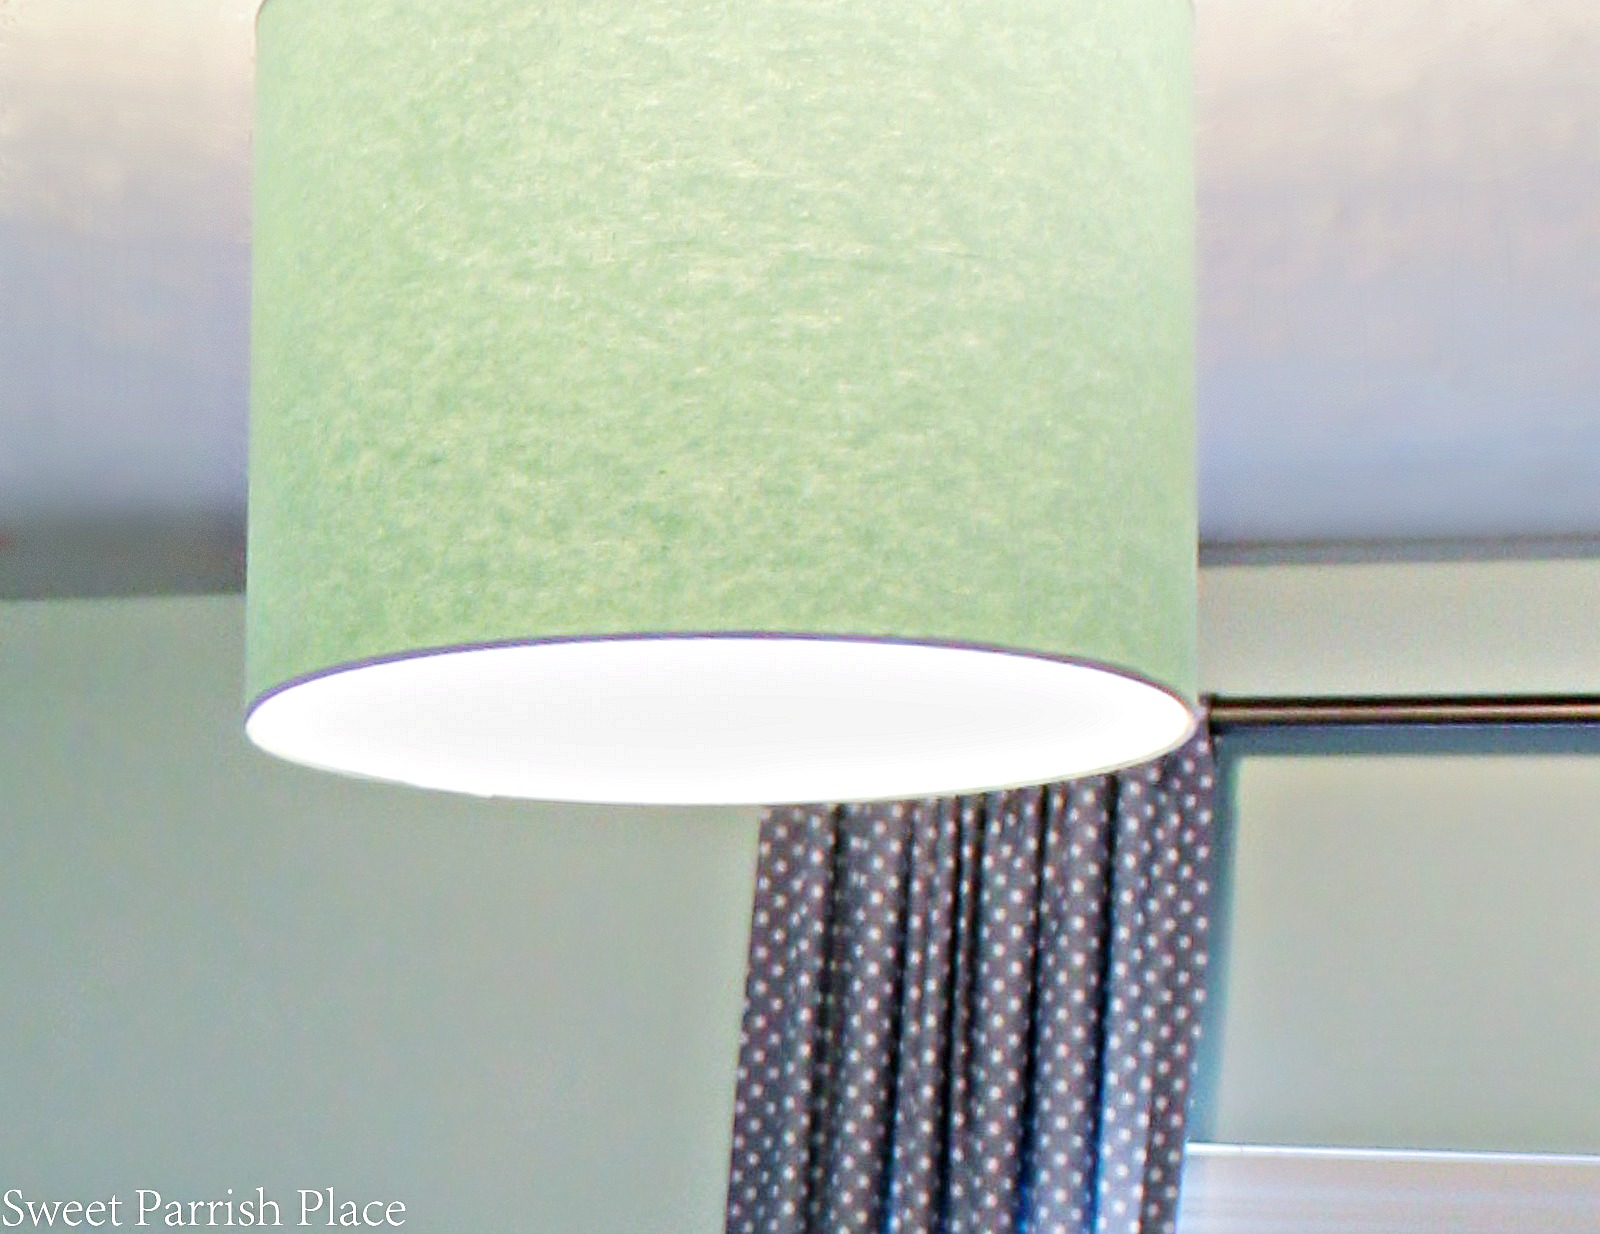 It's week 5 of the One Room Challenge, and I'm sharing my updated ceiling light for less than $15.